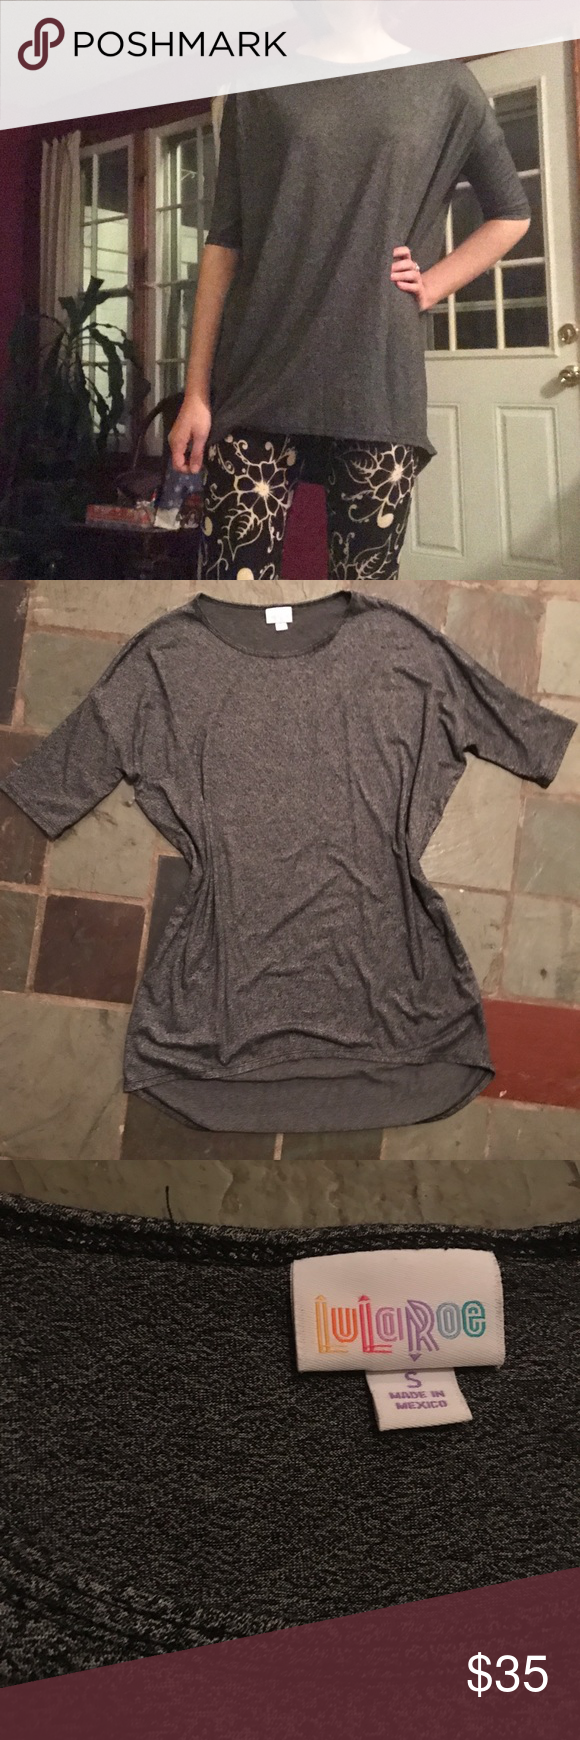 """Dark grey lularoe irma tunic top size small Dark grey heather black lularoe irma top. It has a hi-low cut, and is super stretchy and comfortable! Fitted arms with a flowy loose style. No flaws that I can find, it's in great condition! Feel free to make offers no trades or """"lowest price?"""" Thanks! ~leggings pictured are also for sale!~ LuLaRoe Tops Tunics"""